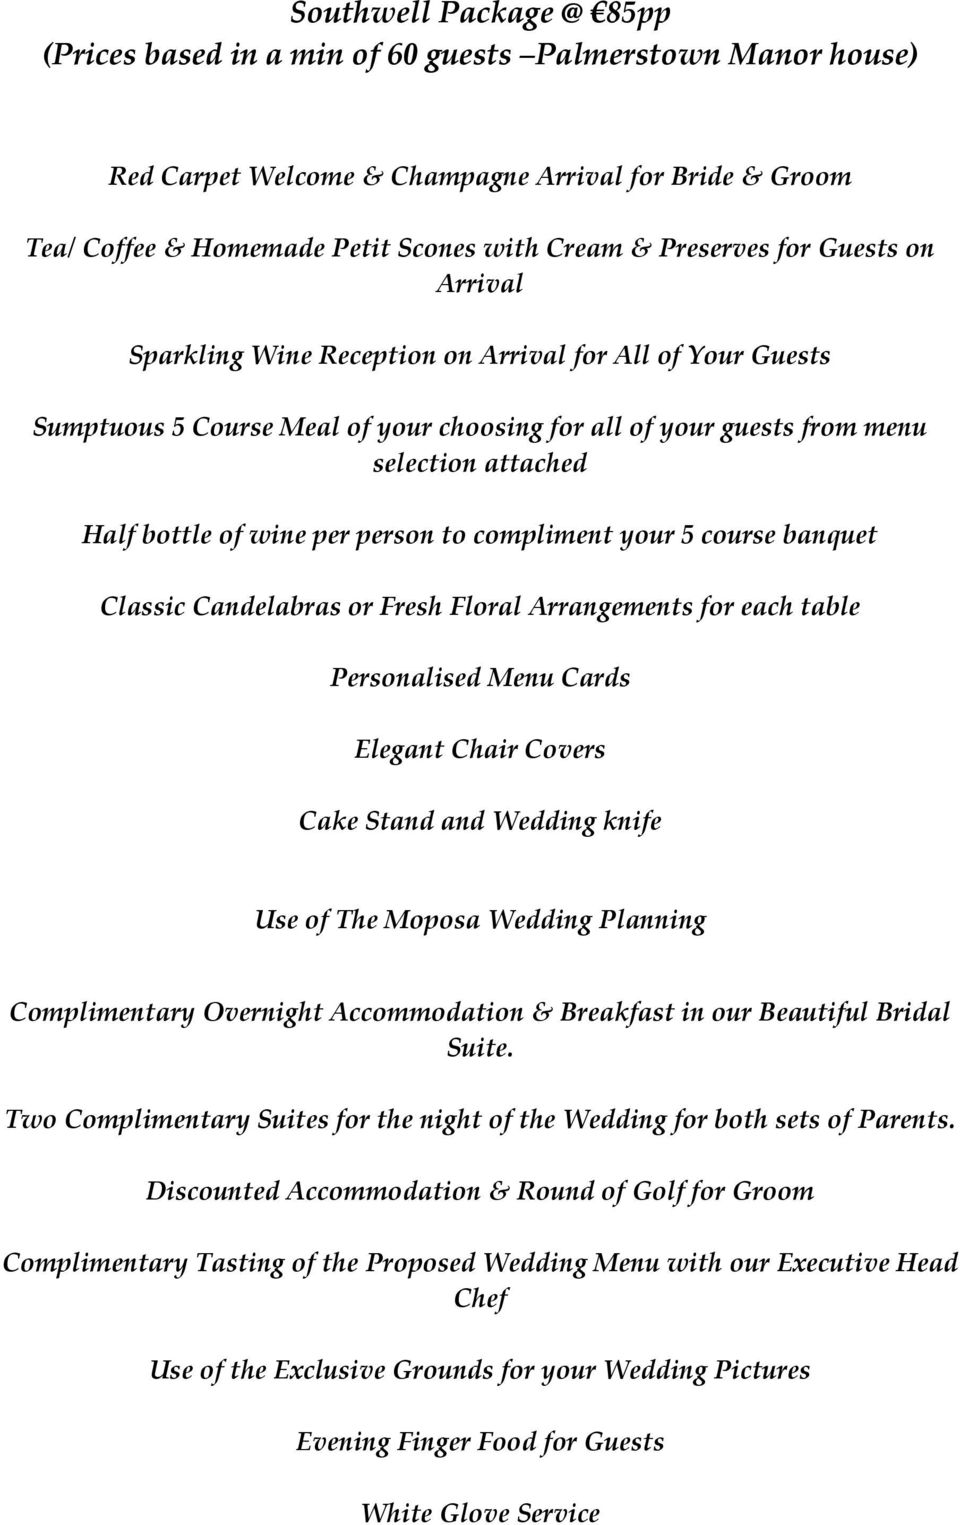 wine per person to compliment your 5 course banquet Classic Candelabras or Fresh Floral Arrangements for each table Personalised Menu Cards Cake Stand and Wedding knife Complimentary Overnight